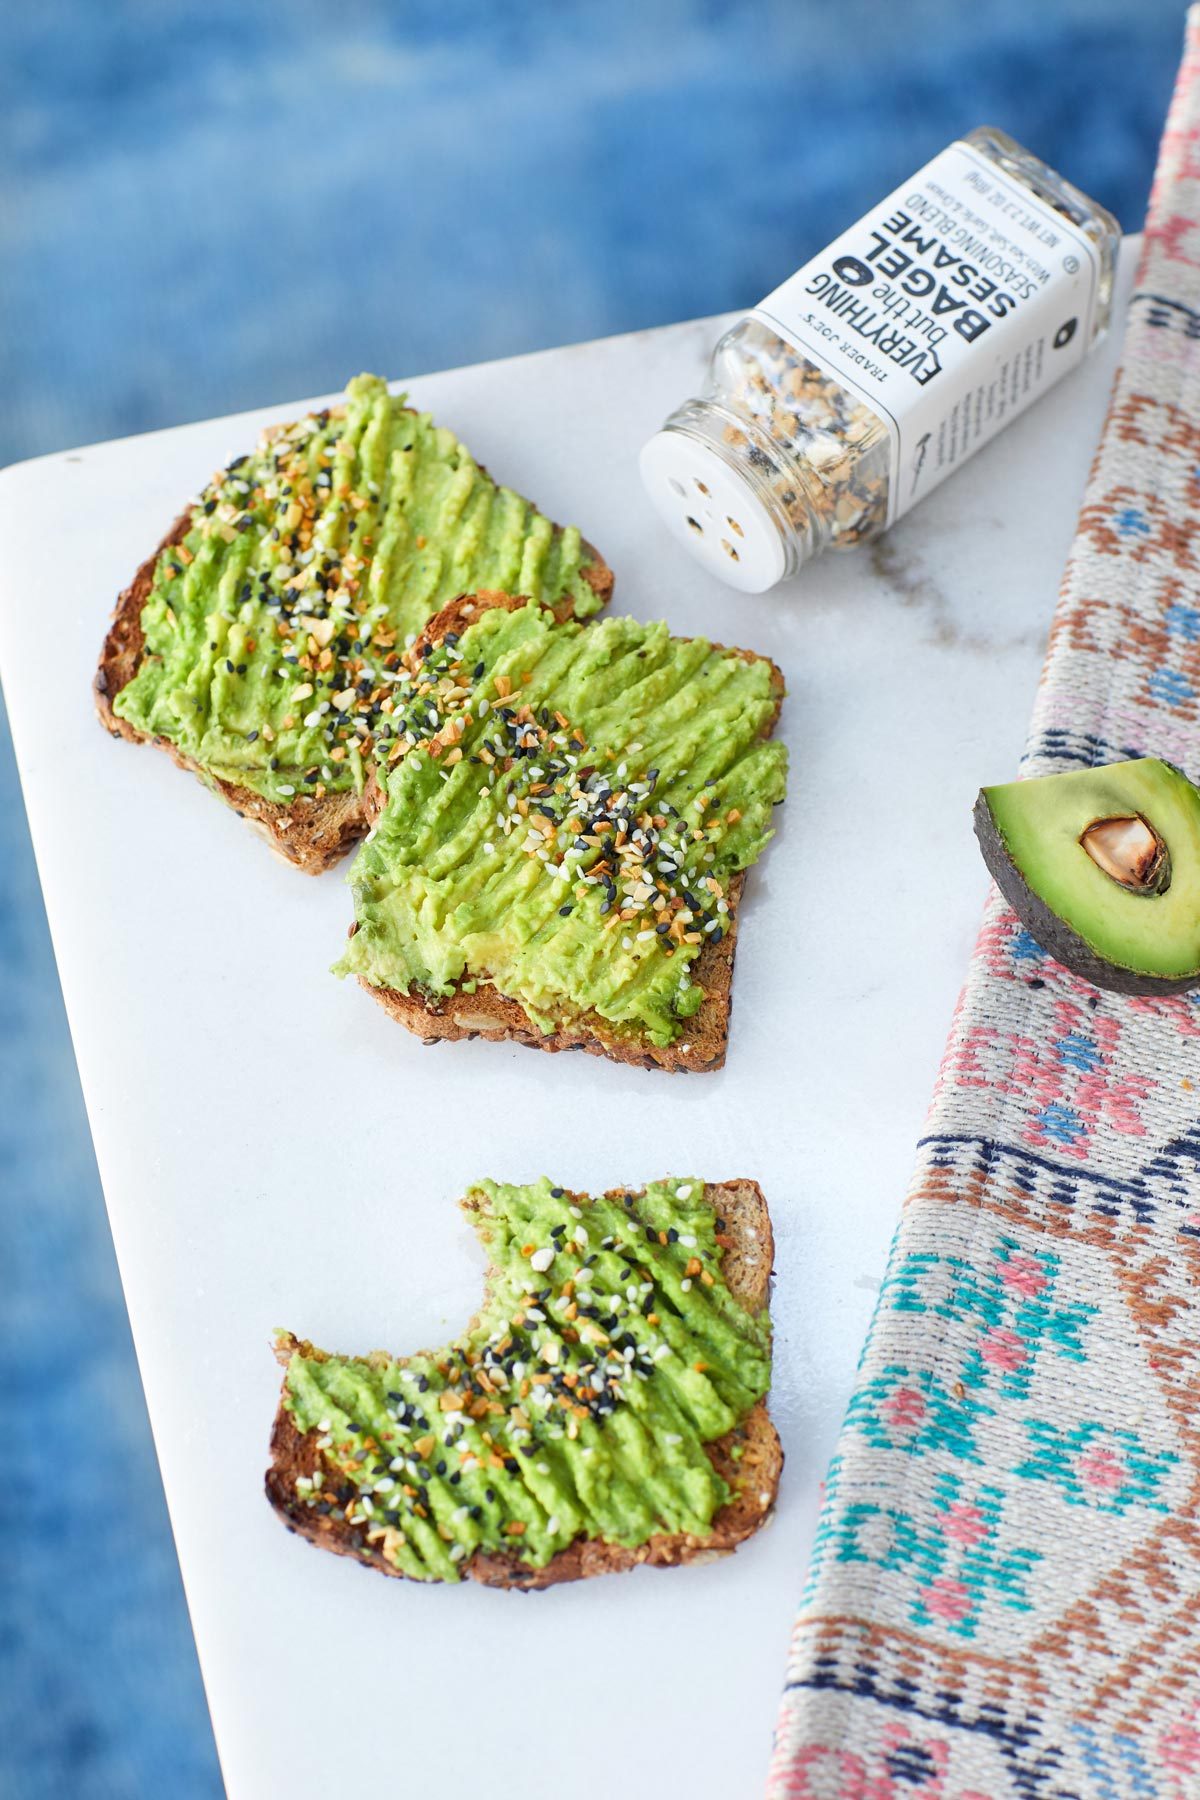 Food lifestyle photography of colorful avocado toast on a white cutting board next to a bottle of seasoning salt